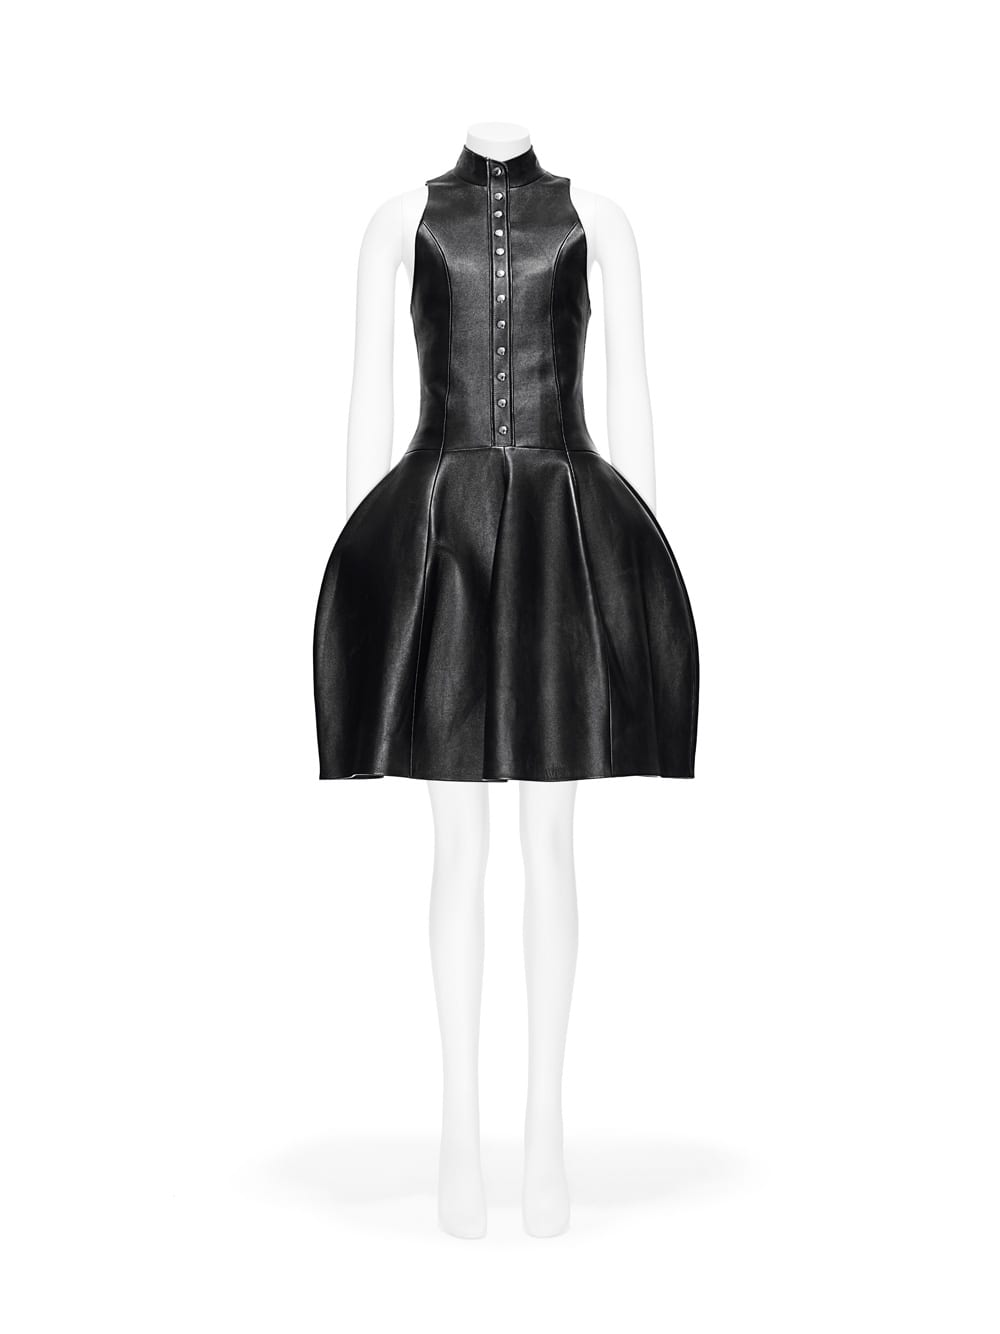 Interruption Dress, Nicolas Ghesquière (French, born 1971) for Louis Vuitton (French, founded 1854), spring/summer 2018; Courtesy Collection Louis Vuitton. Image courtesy of The Metropolitan Museum of Art, Photo © Nicholas Alan Cope